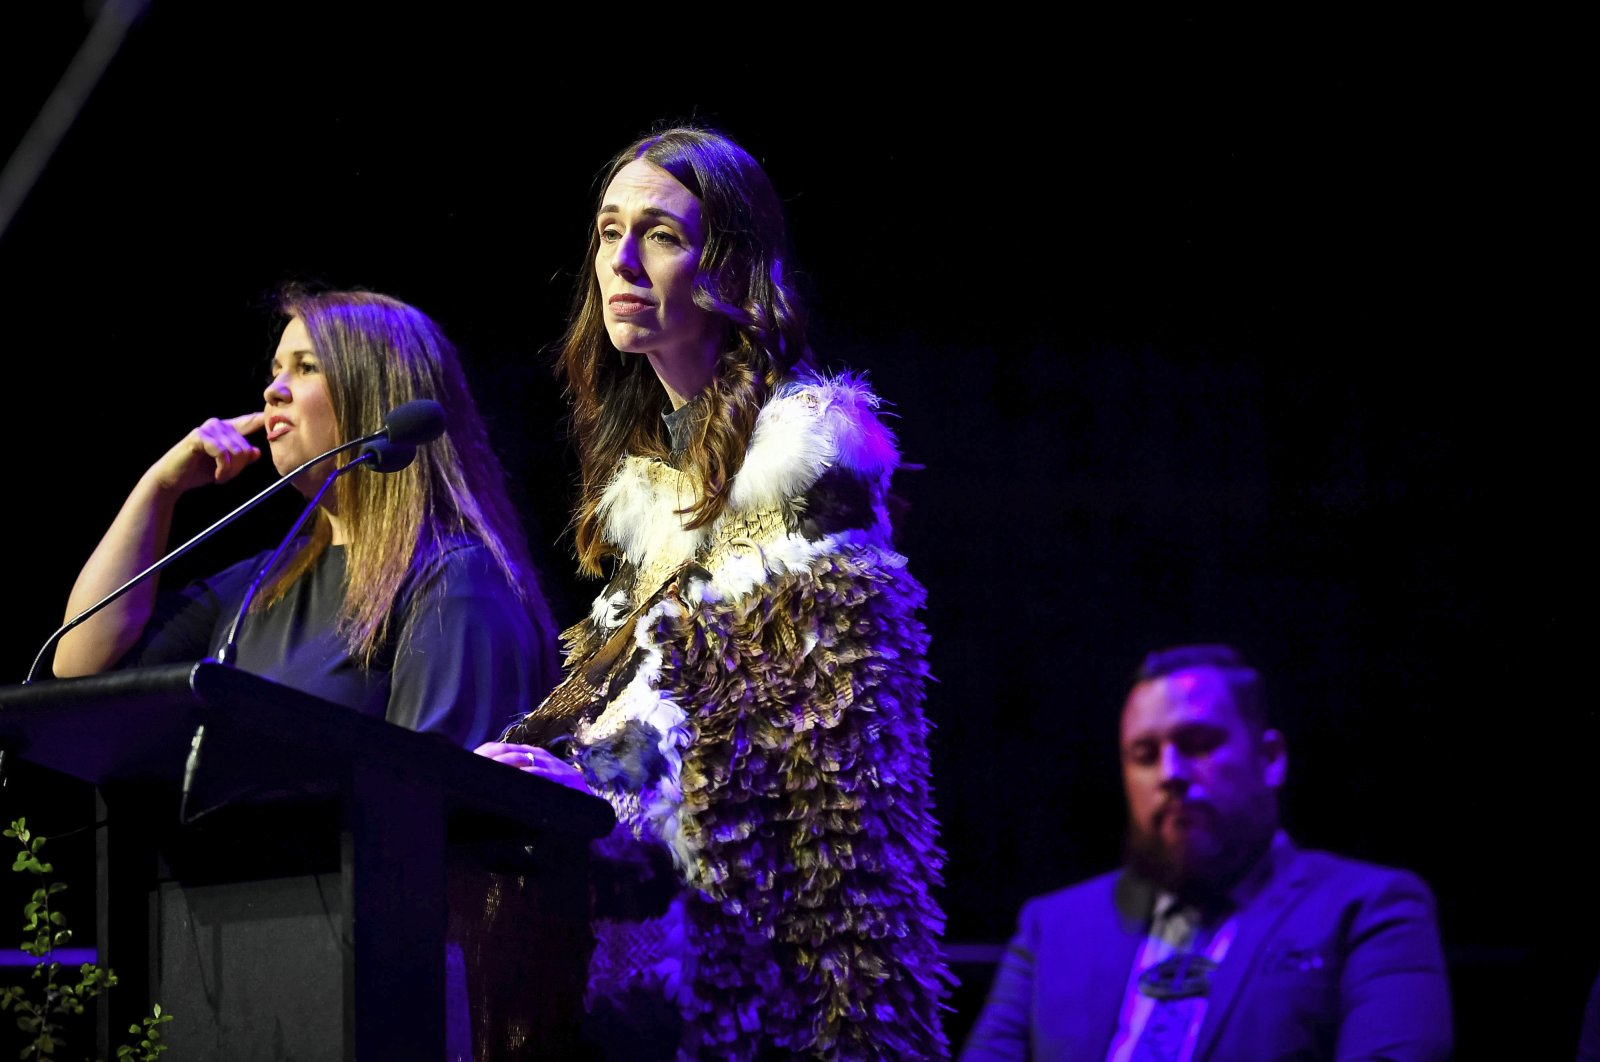 New Zealand's Prime Minister Jacinda Ardernspeaks at a National Remembrance Service, Saturday, March 13, 2021, in Christchurch, New Zealand. (Department of Internal Affairs via AP)